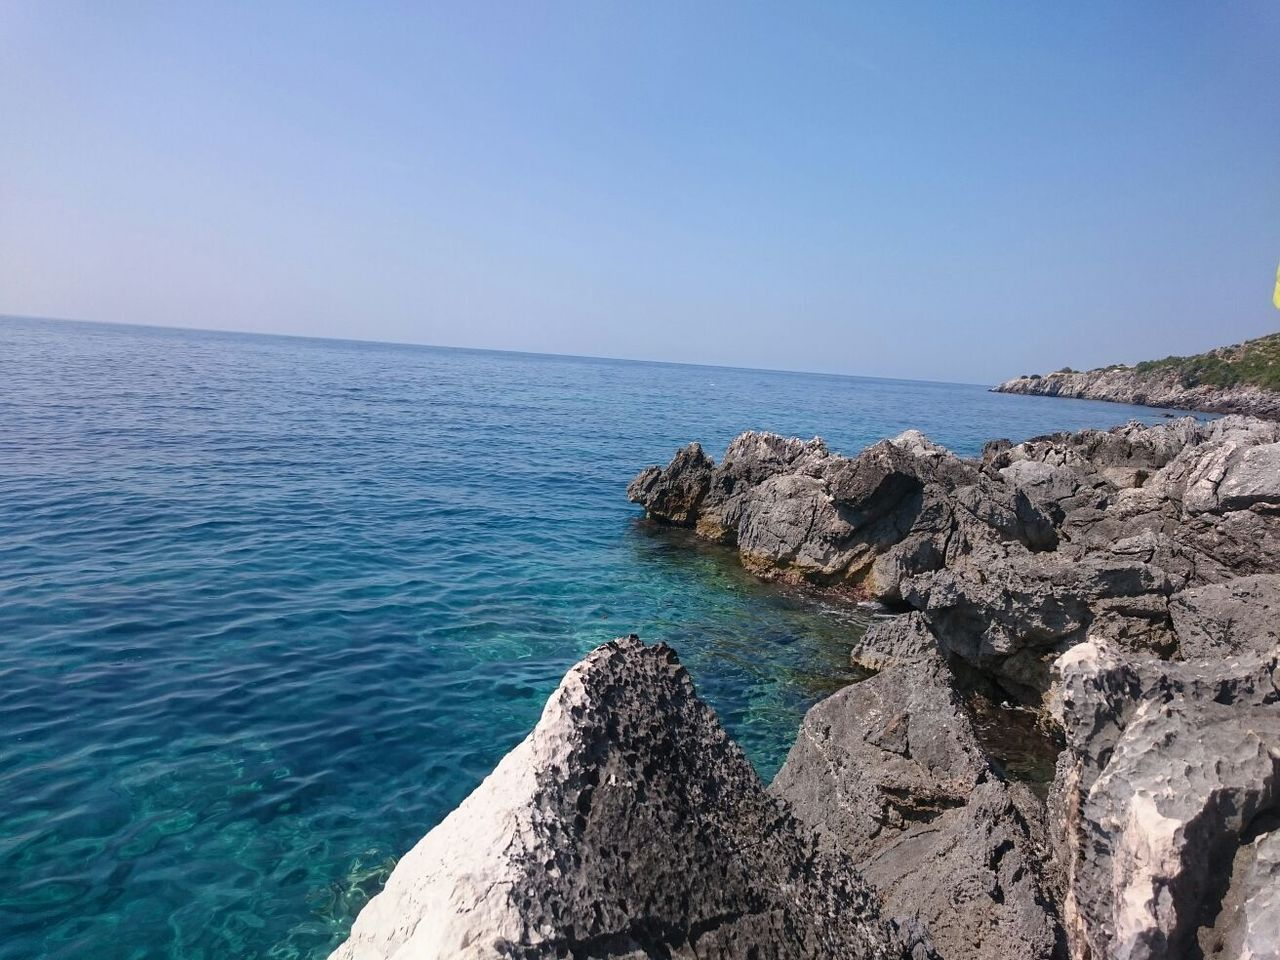 sea, horizon over water, nature, water, scenics, tranquil scene, beauty in nature, blue, tranquility, outdoors, rock - object, clear sky, day, no people, sky, beach